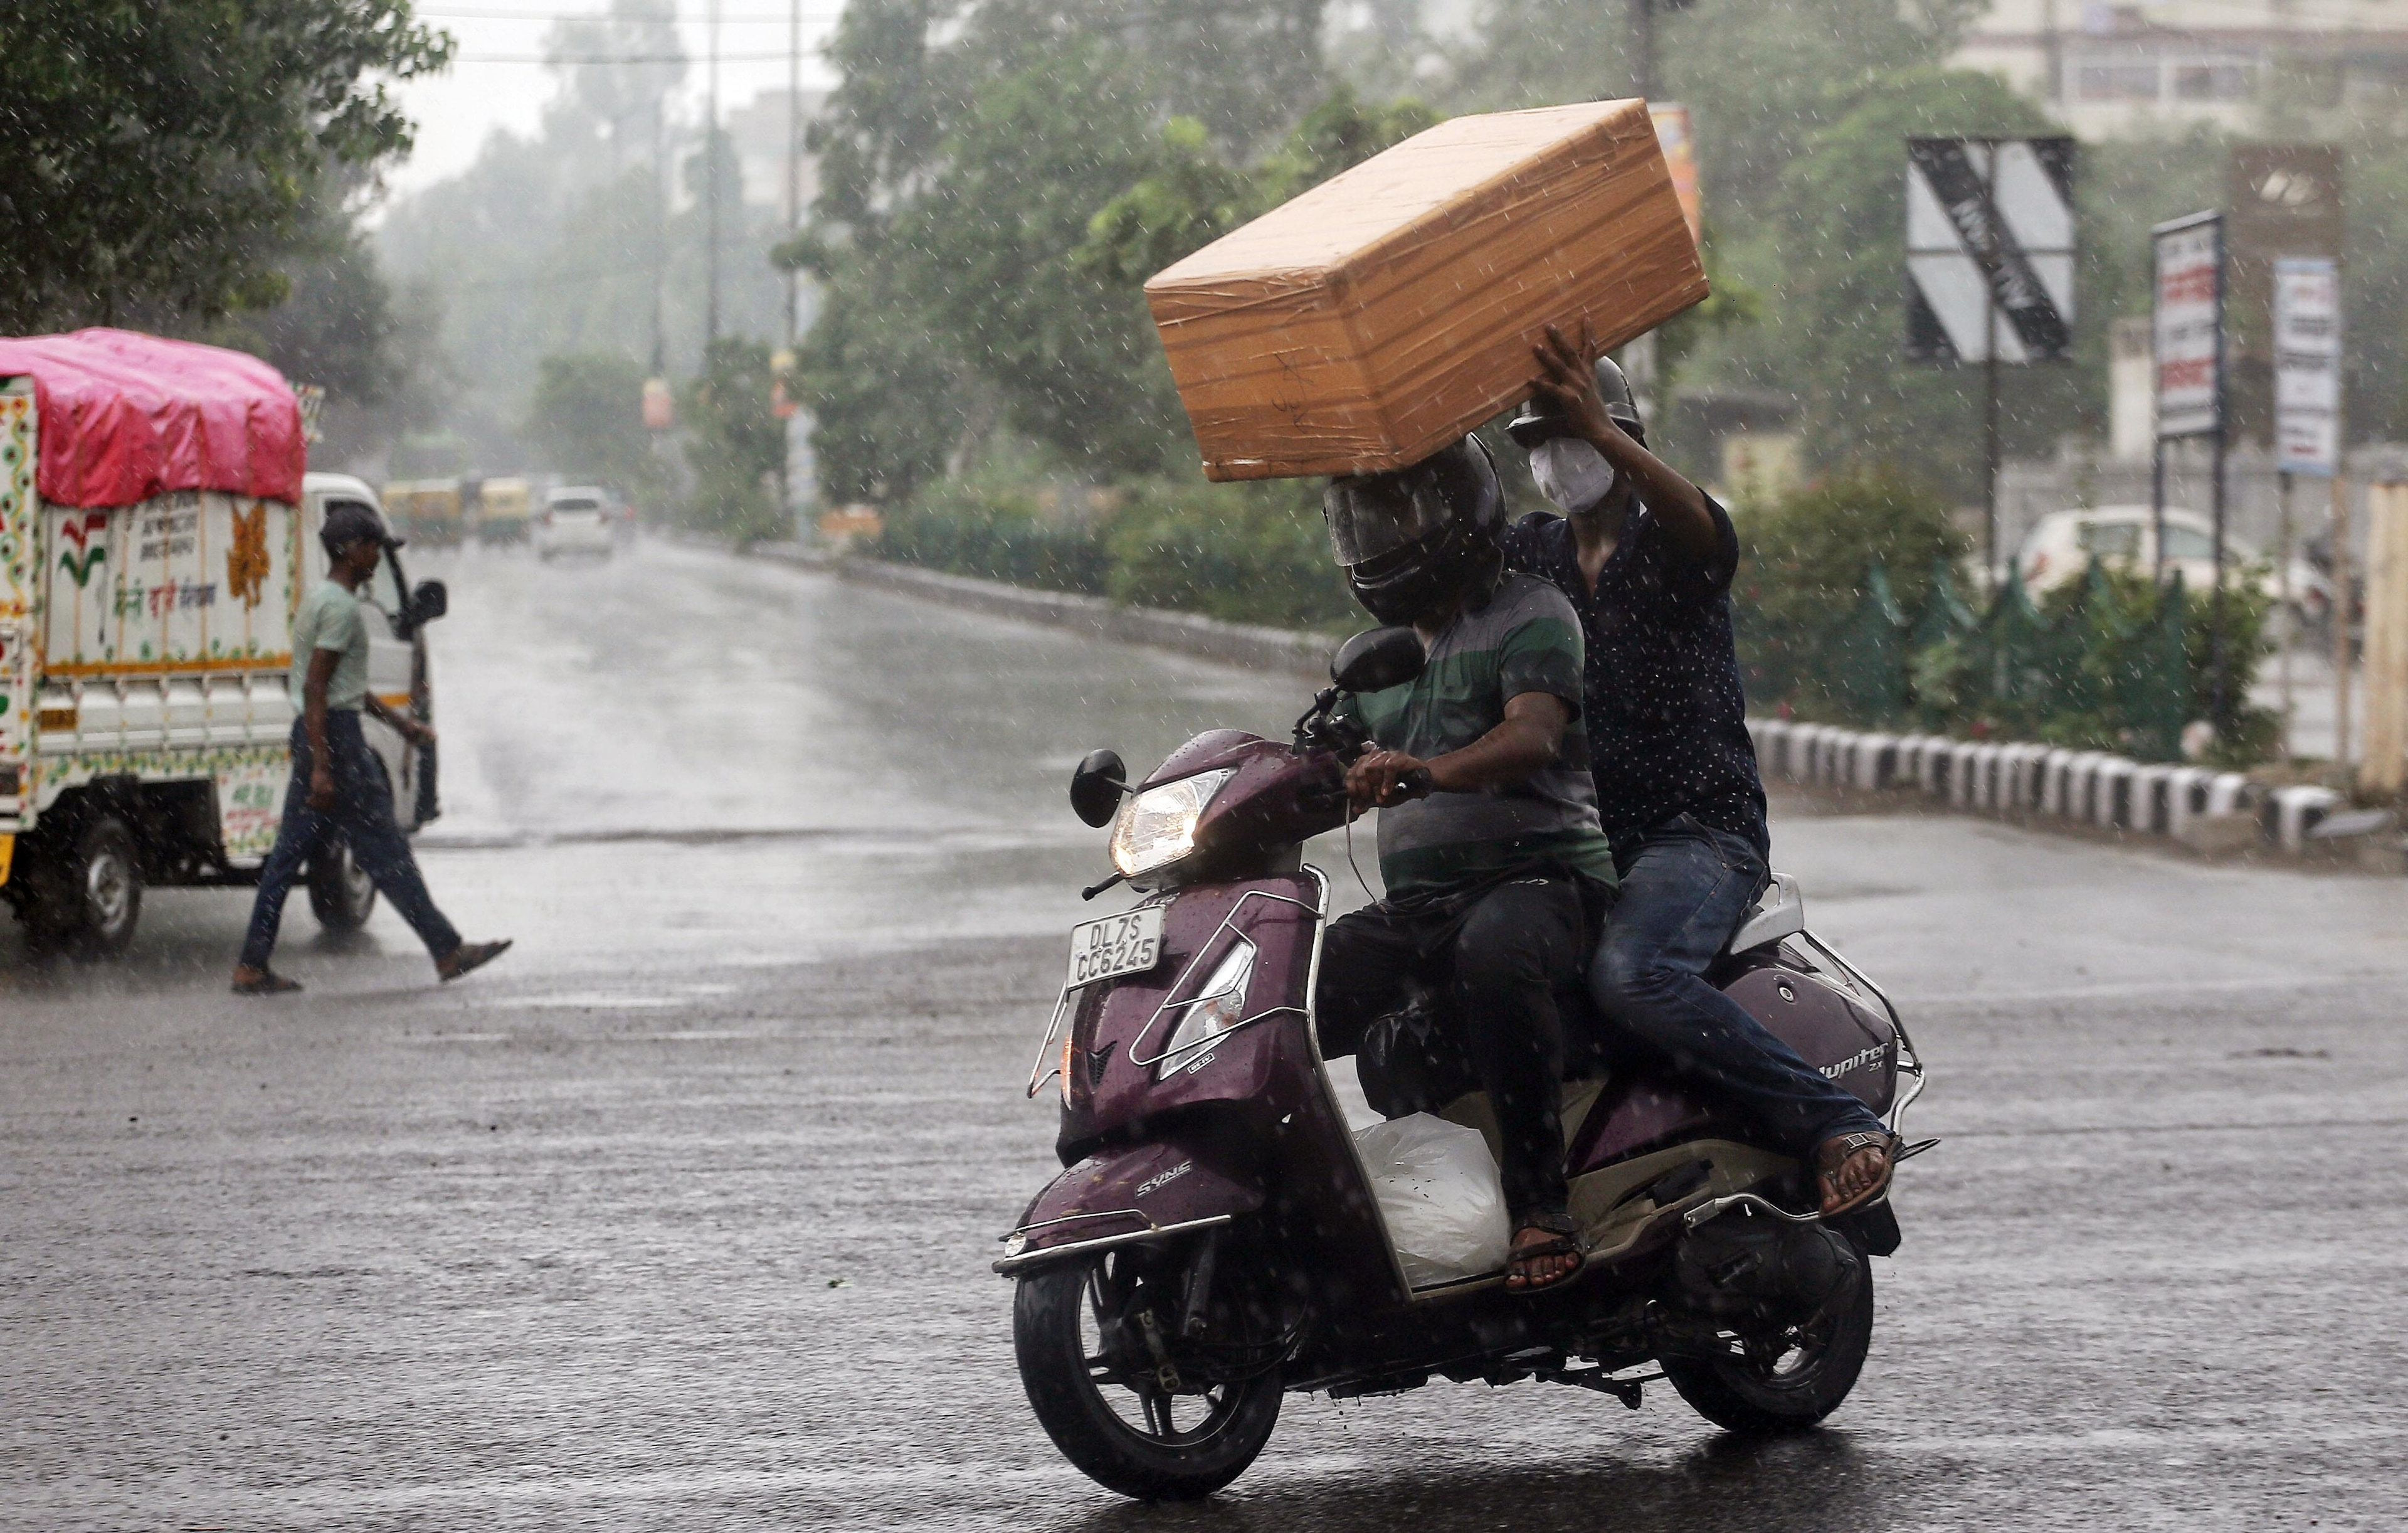 Cloud cover, patchy rains to keep mercury in check in Delhi: Met Dept India's sugar crop faces delays with COVID-19 raging throughout nation Nearly 480,000 kids infected with Covid-19 in US Sluggish improvement in global air passenger demand continue